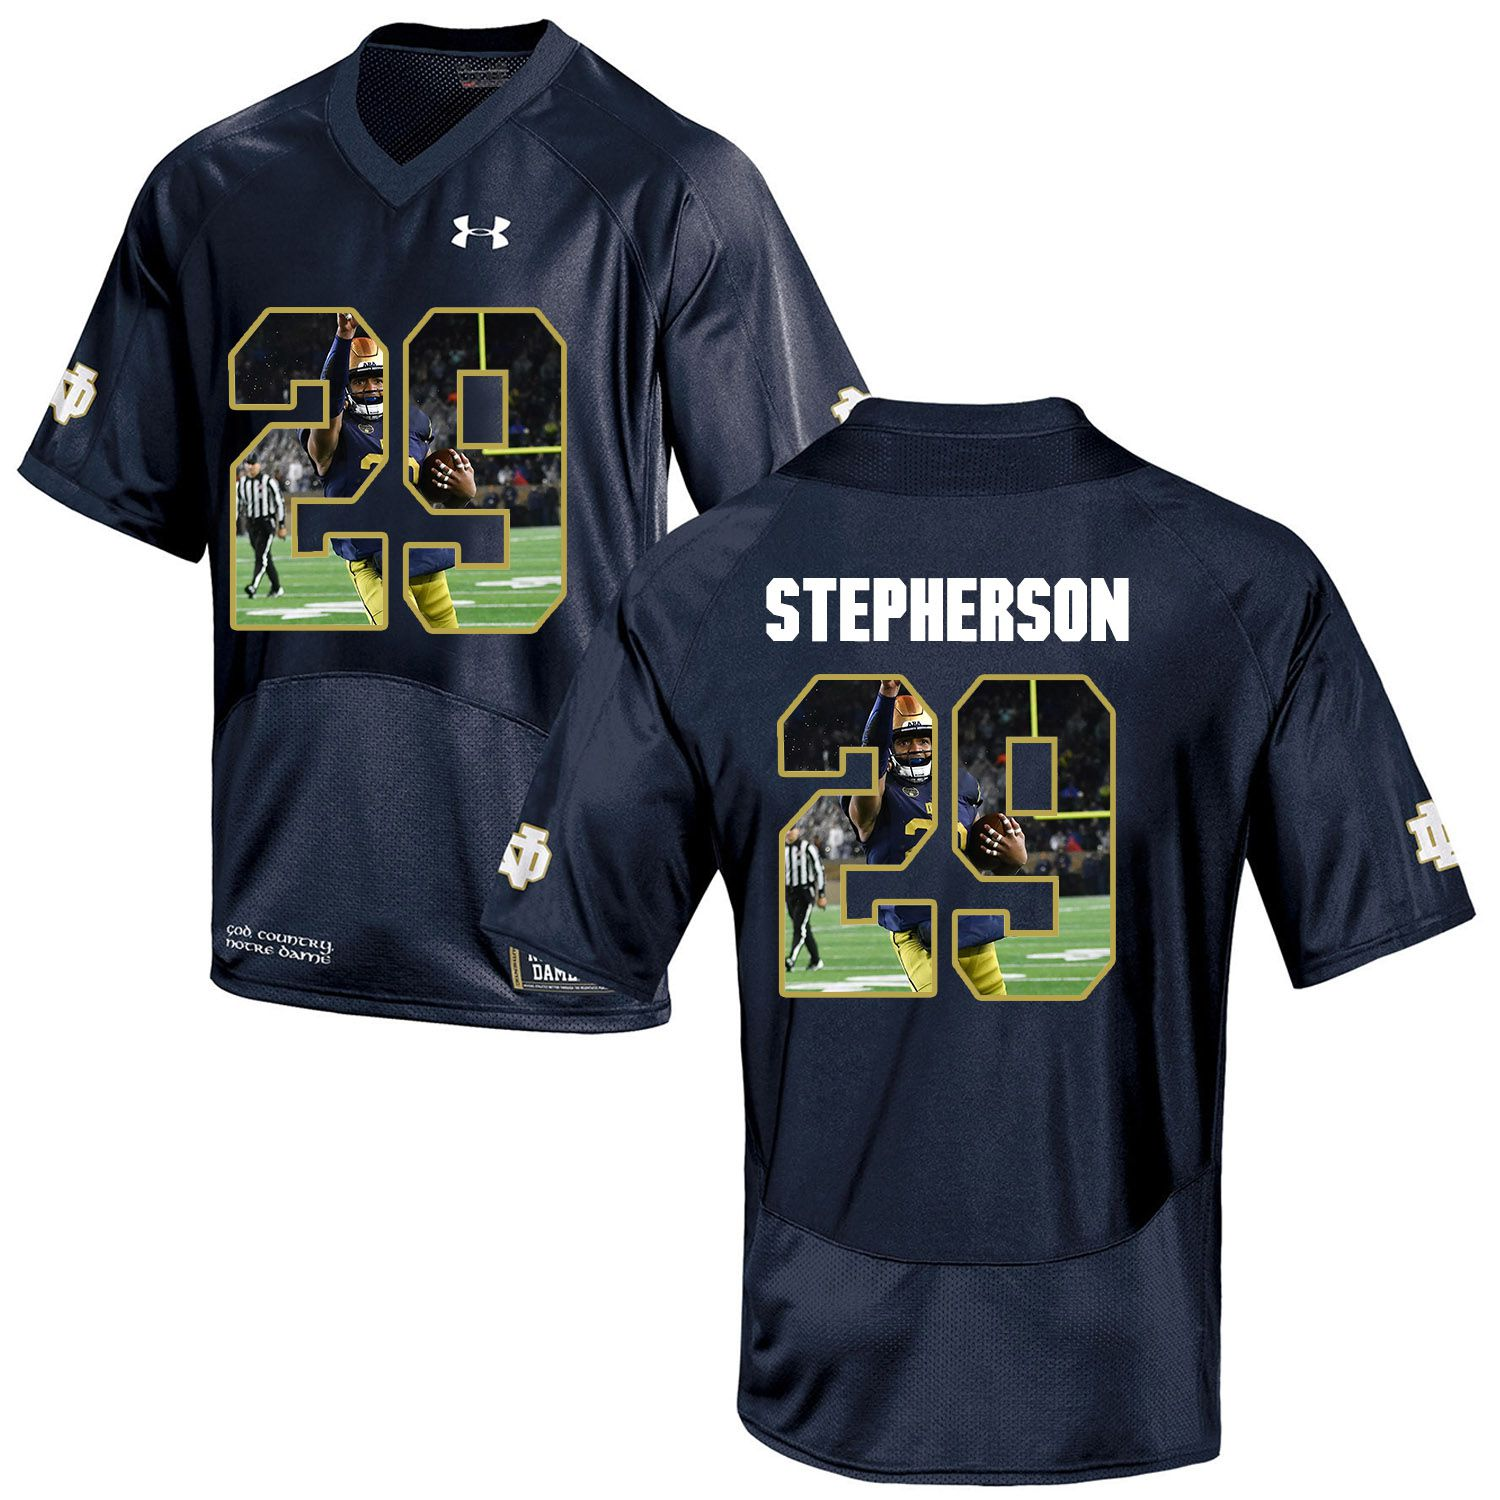 Men Norte Dame Fighting Irish 29 Stepherson Navy Blue Fashion Edition Customized NCAA Jerseys